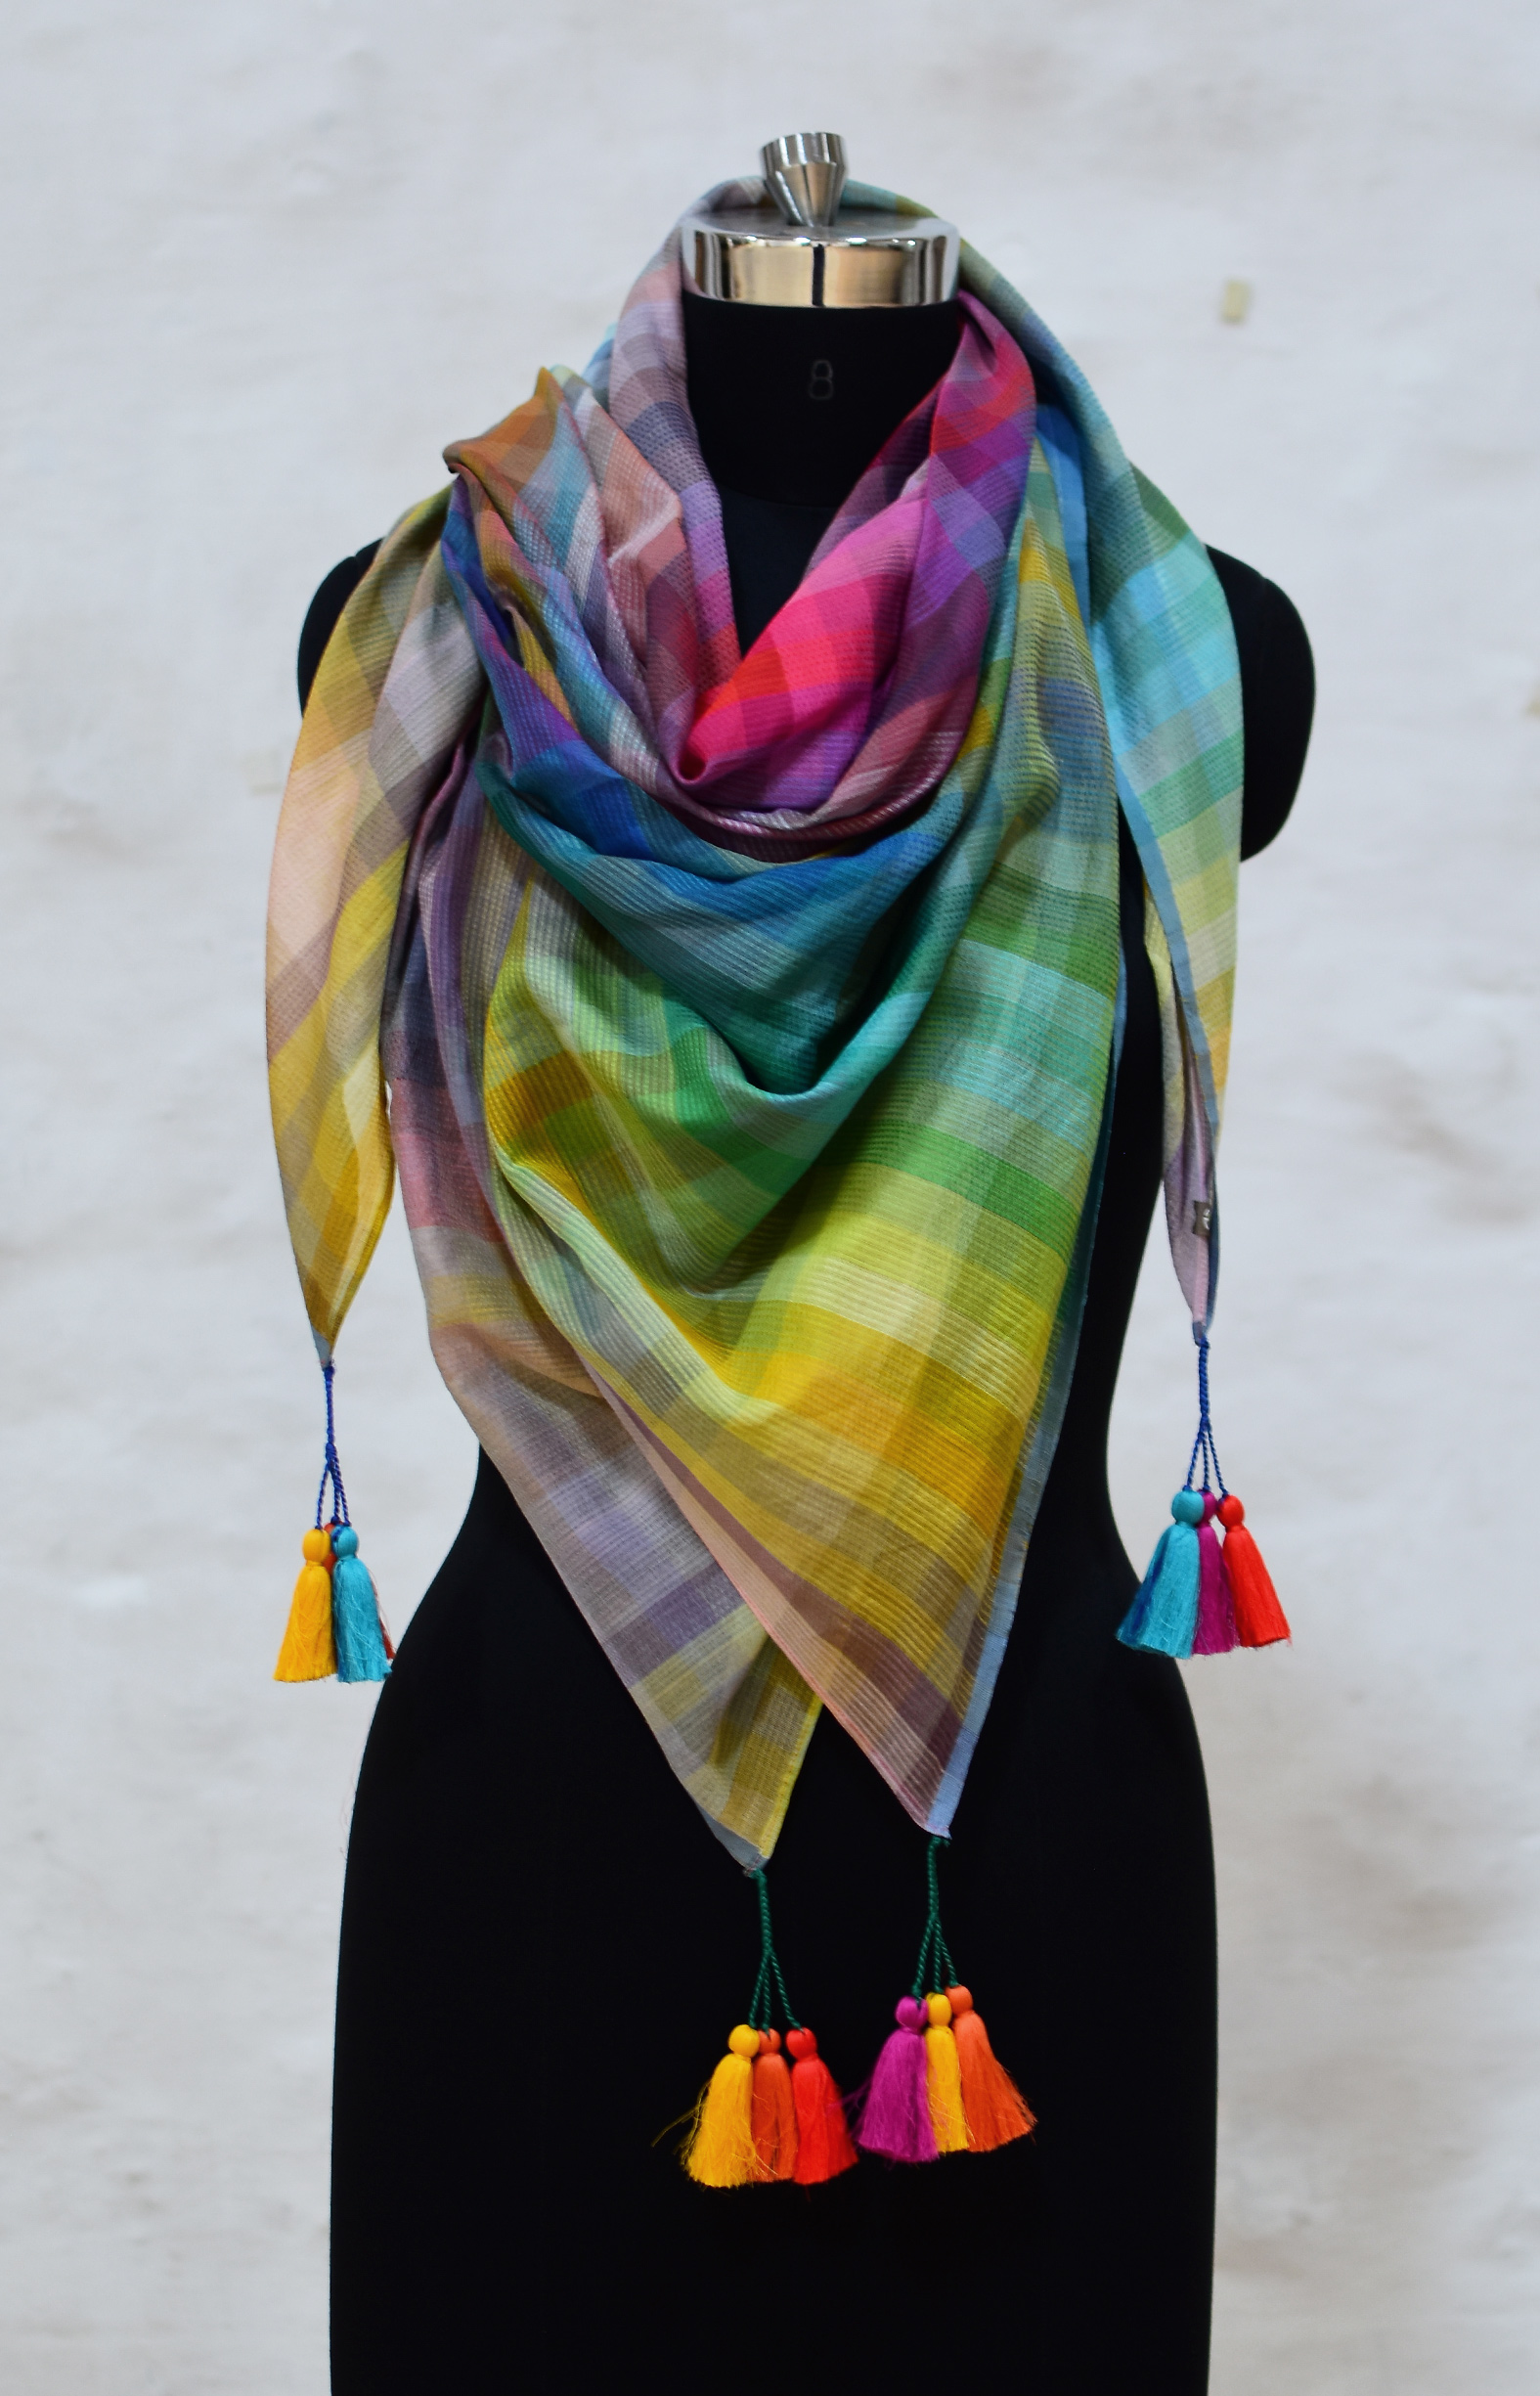 The 6400 Colour,Multicolour,  Rainbow, Handloom Organic Cotton Square Scarf